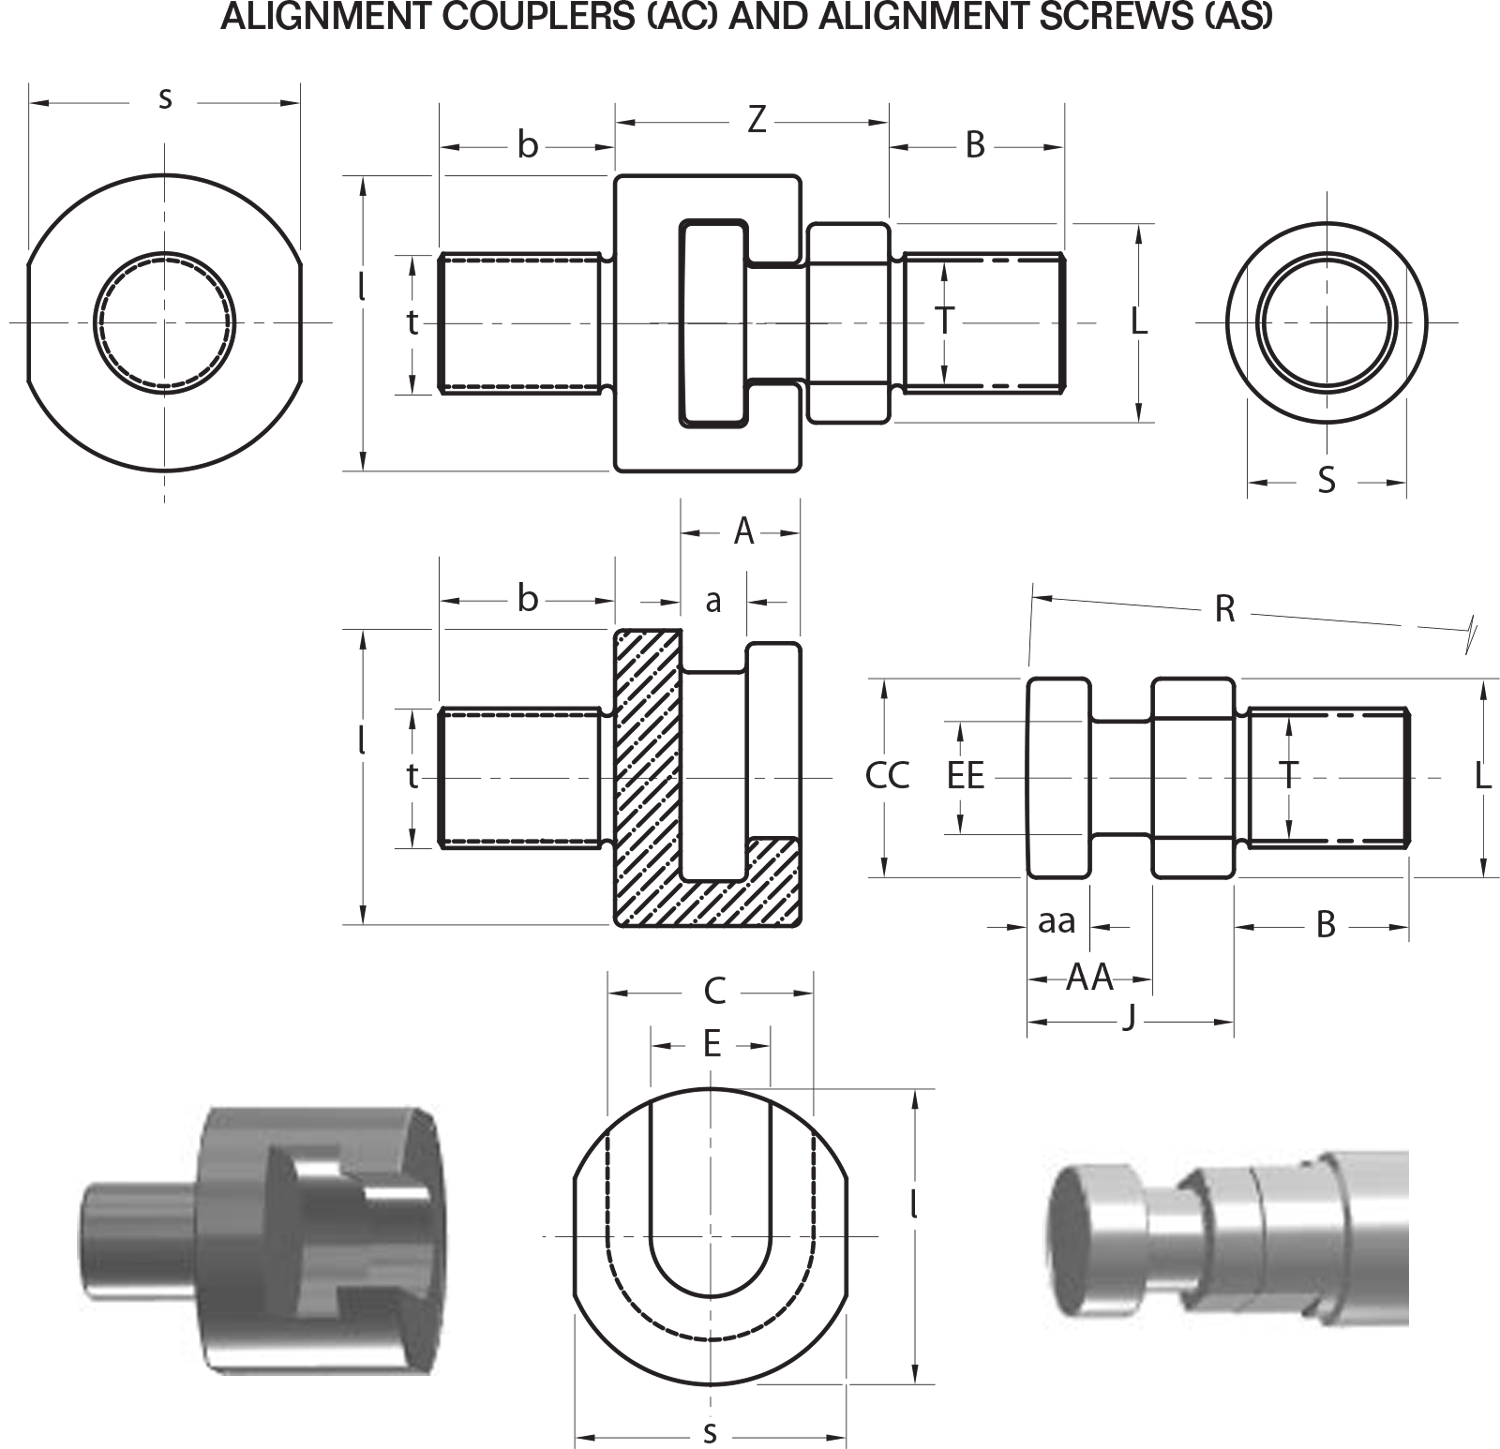 Alignment Couplers and Alignment Screws